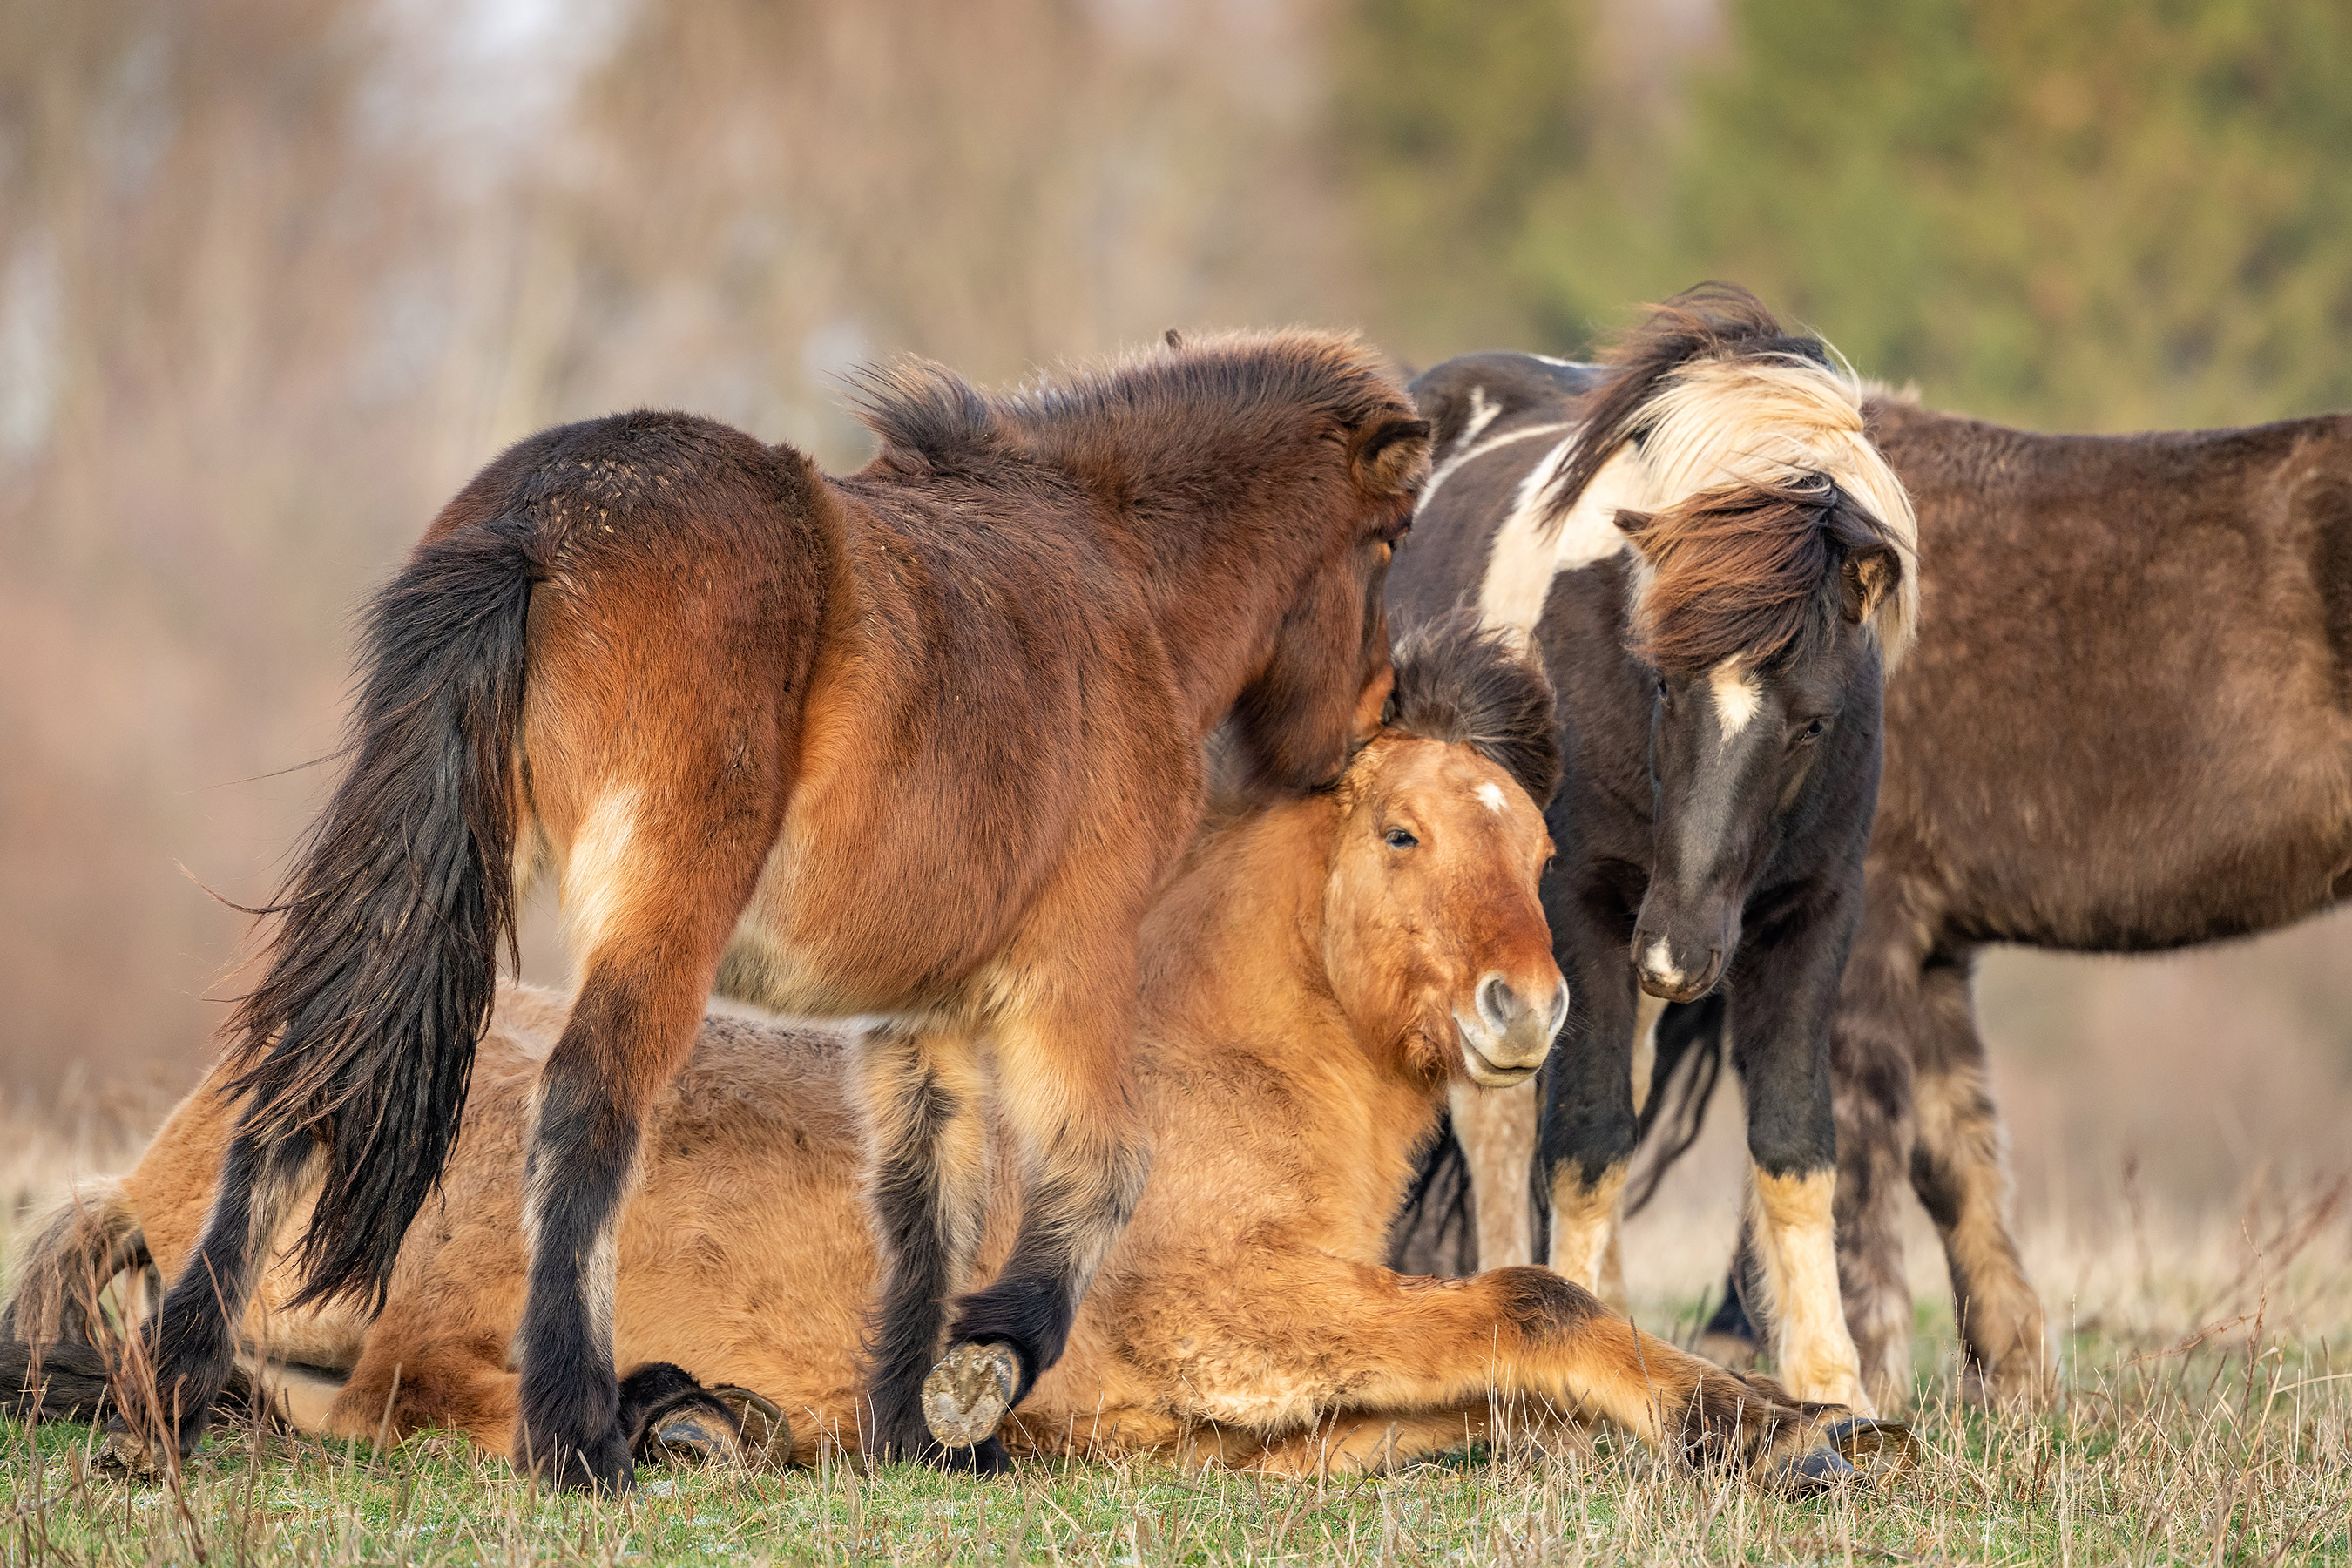 Wild Horses Team Up to Help Revive Fallen 2-Year-Old Stallion by Affectionately Biting Him (PHOTOS)